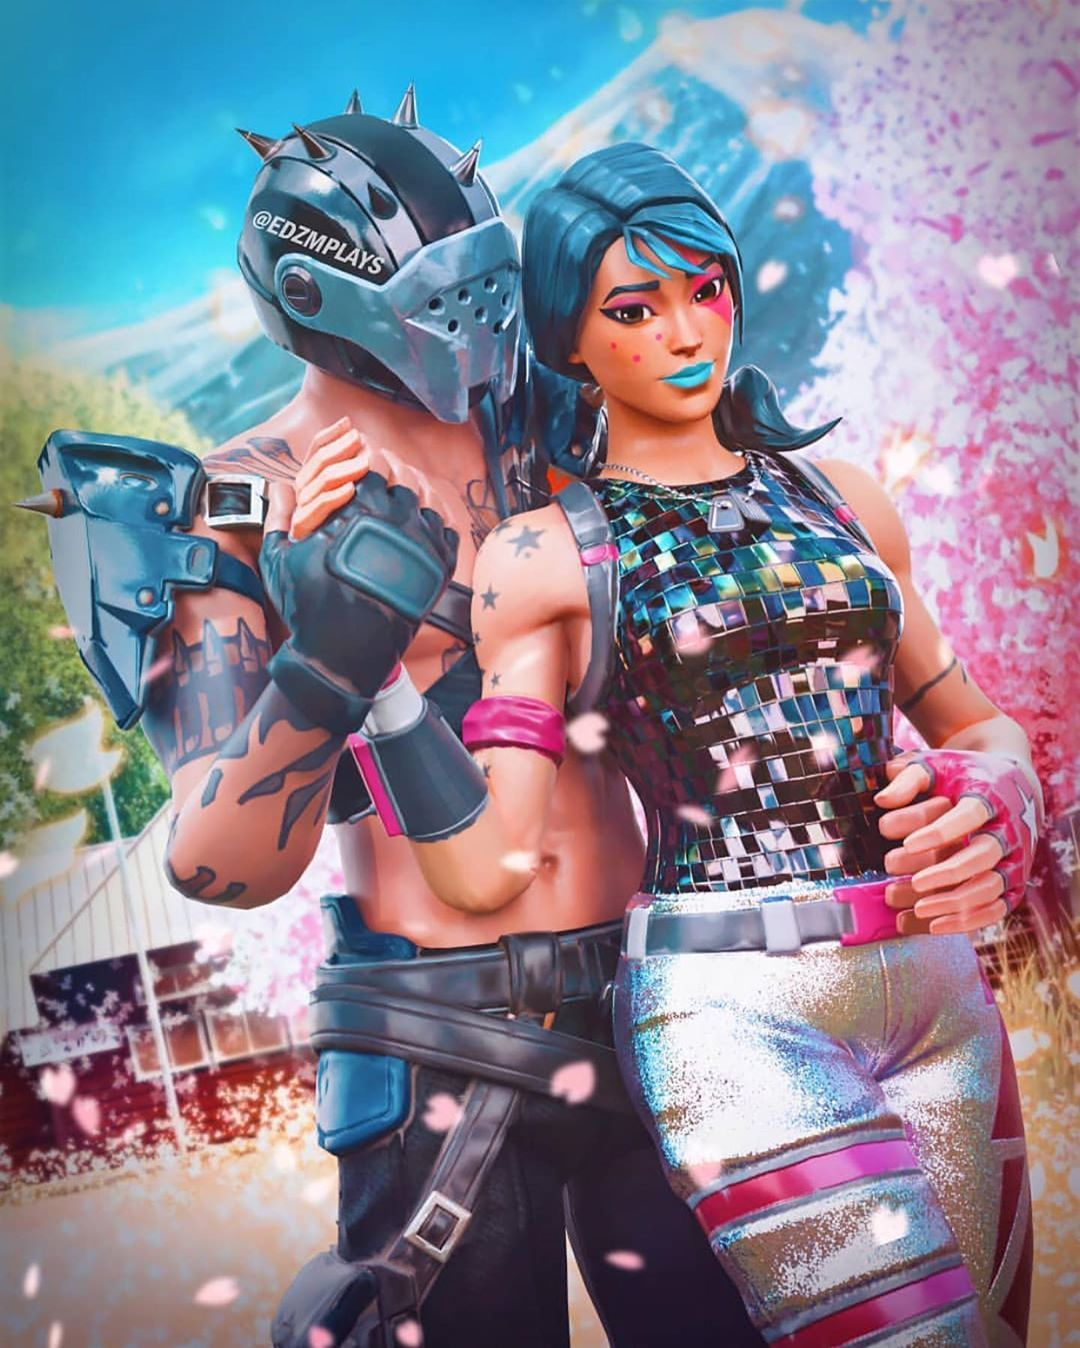 Fortnite Art Fanart In 2020 Best Gaming Wallpapers Gaming Wallpapers Cute Art Styles